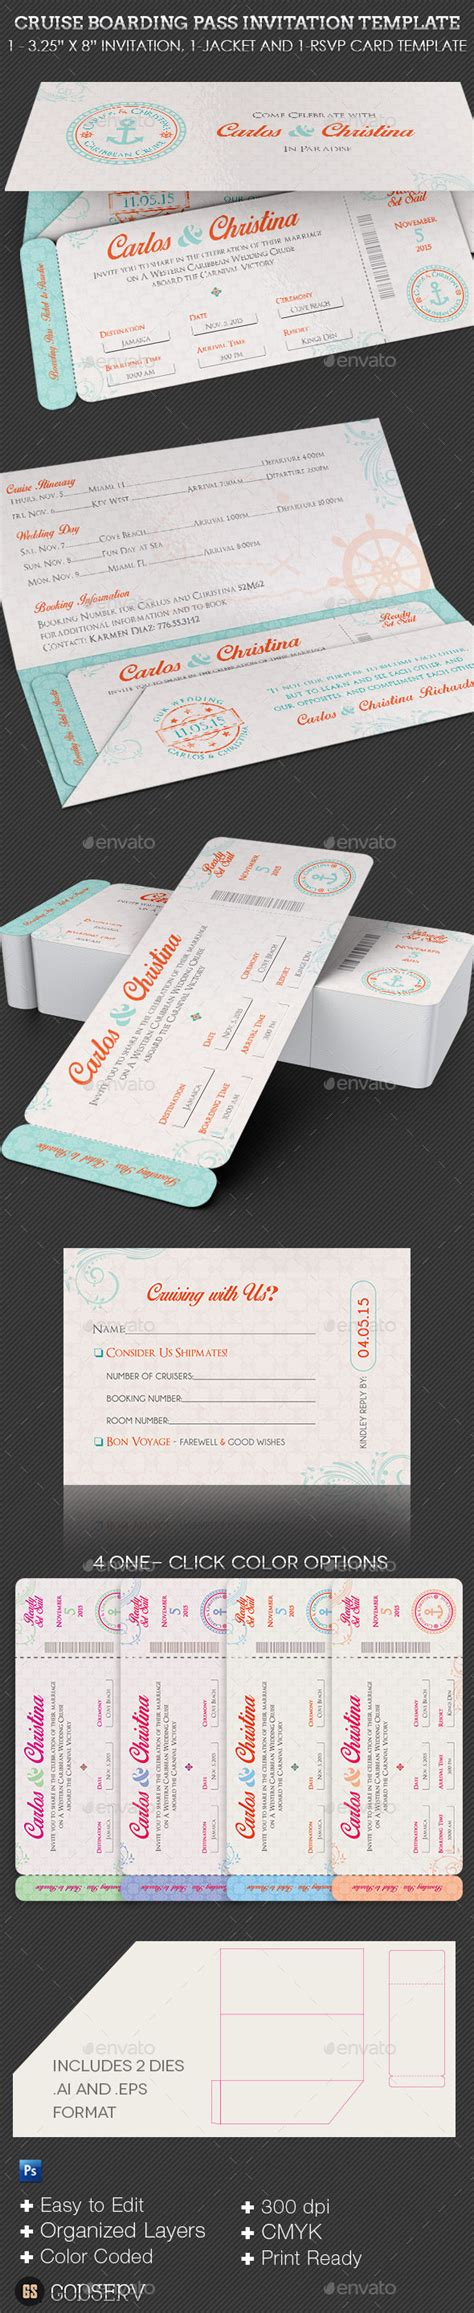 boarding pass place card template wedding cruise boarding pass invitation template by